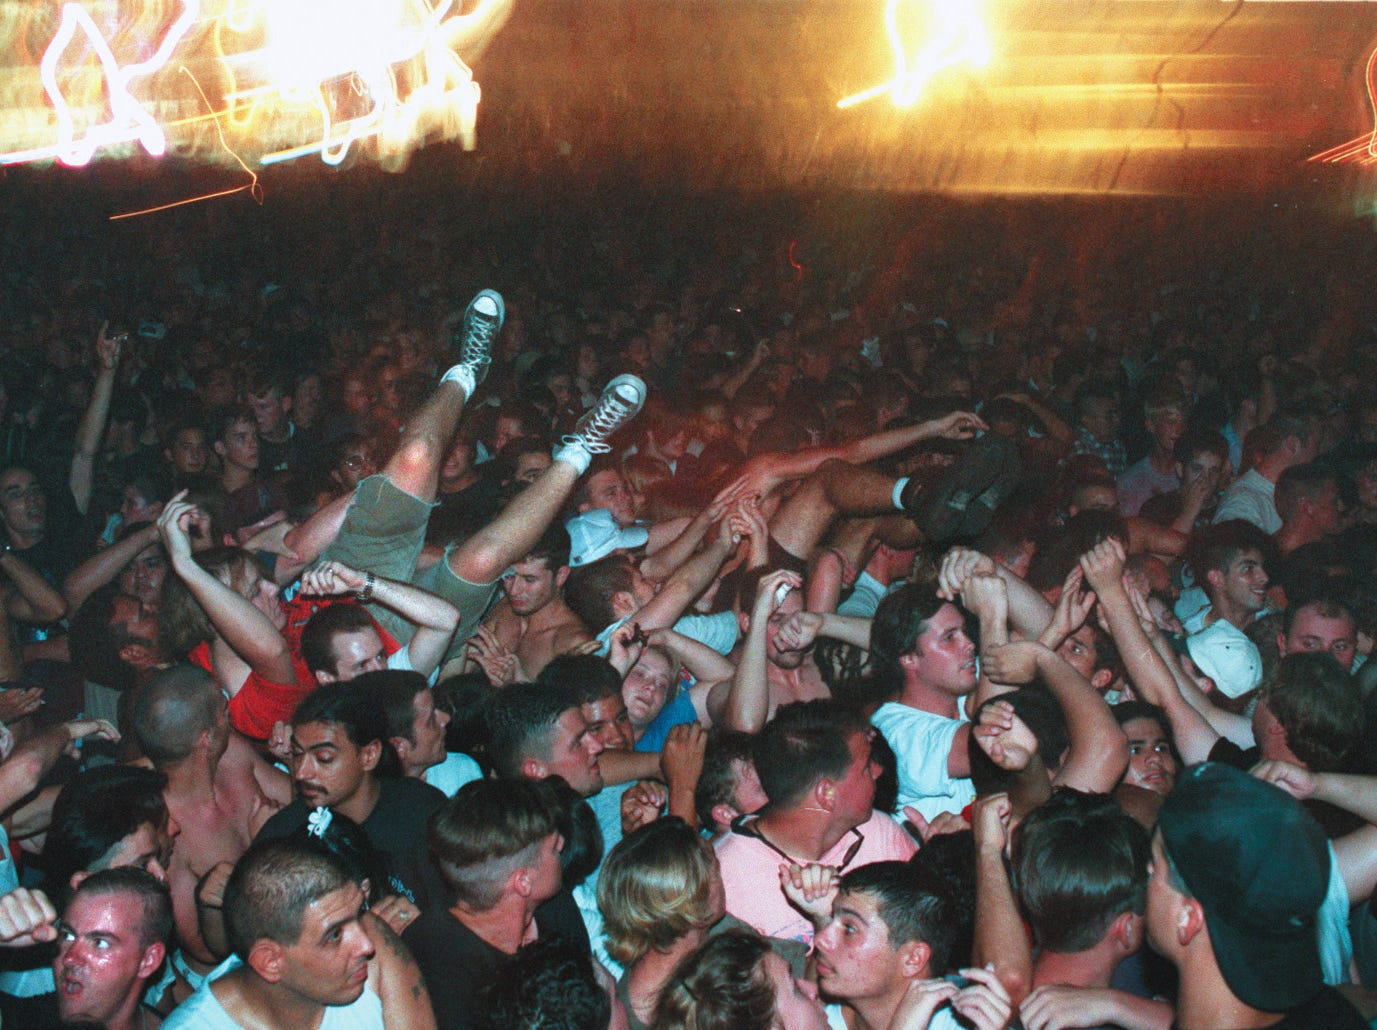 Concert goers are carried over the crowd at Texas Sky Festival Park in Corpus Christi during the Butthole Surfers' concert on July 6, 1996.Photo by David Pellerin 7-6-96